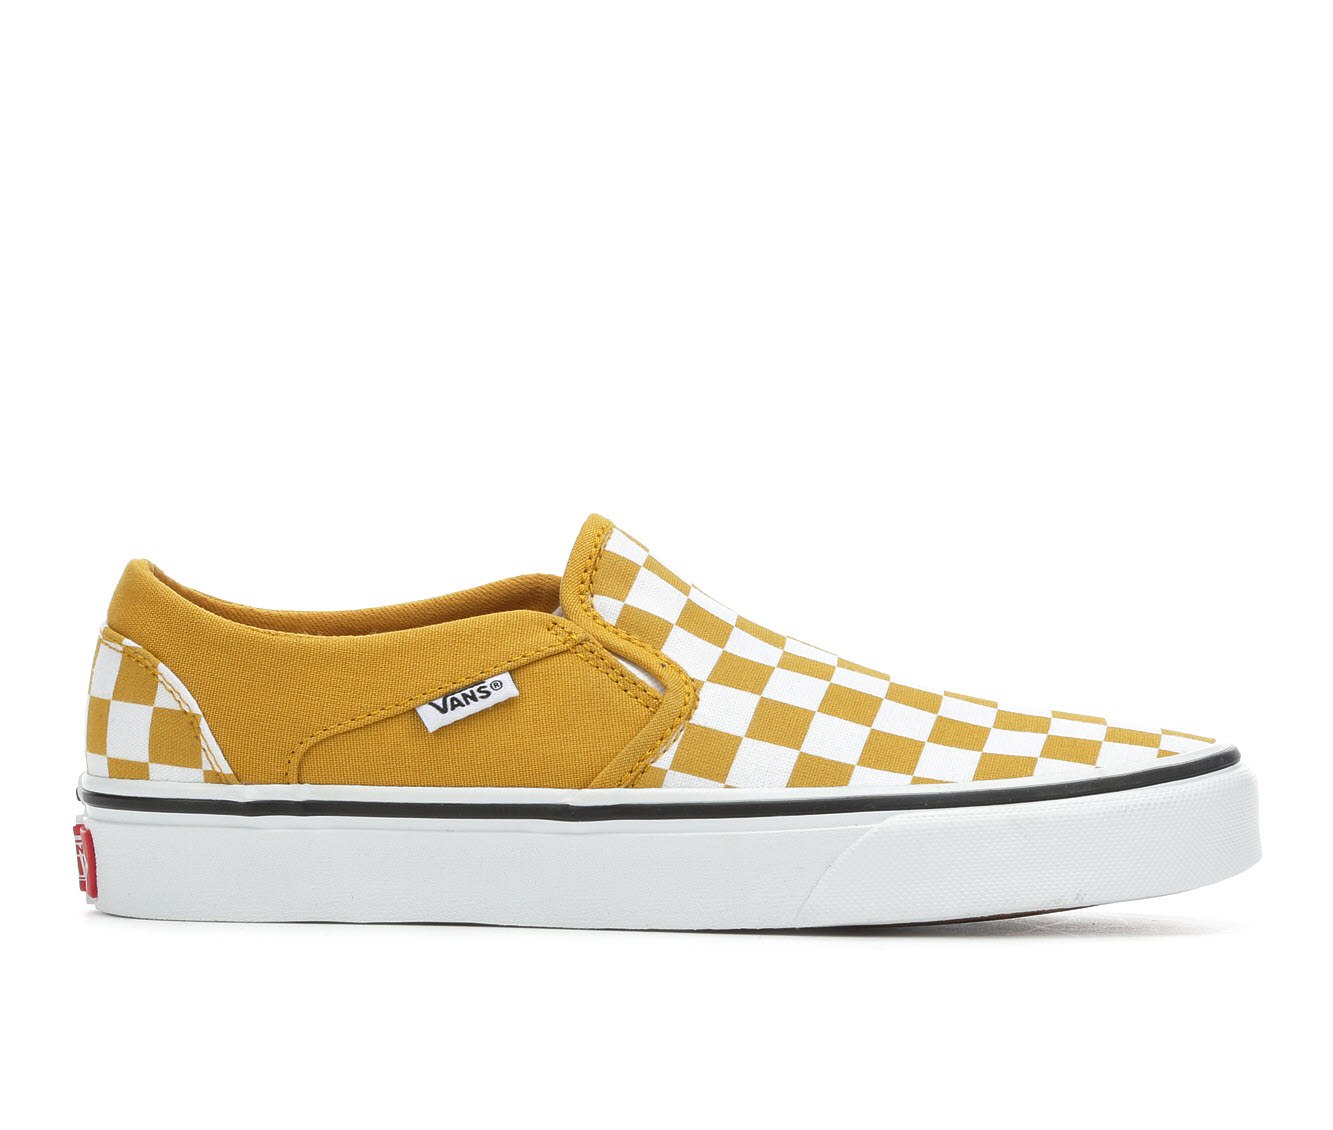 Vans Asher Women's Athletic Shoe (Yellow)